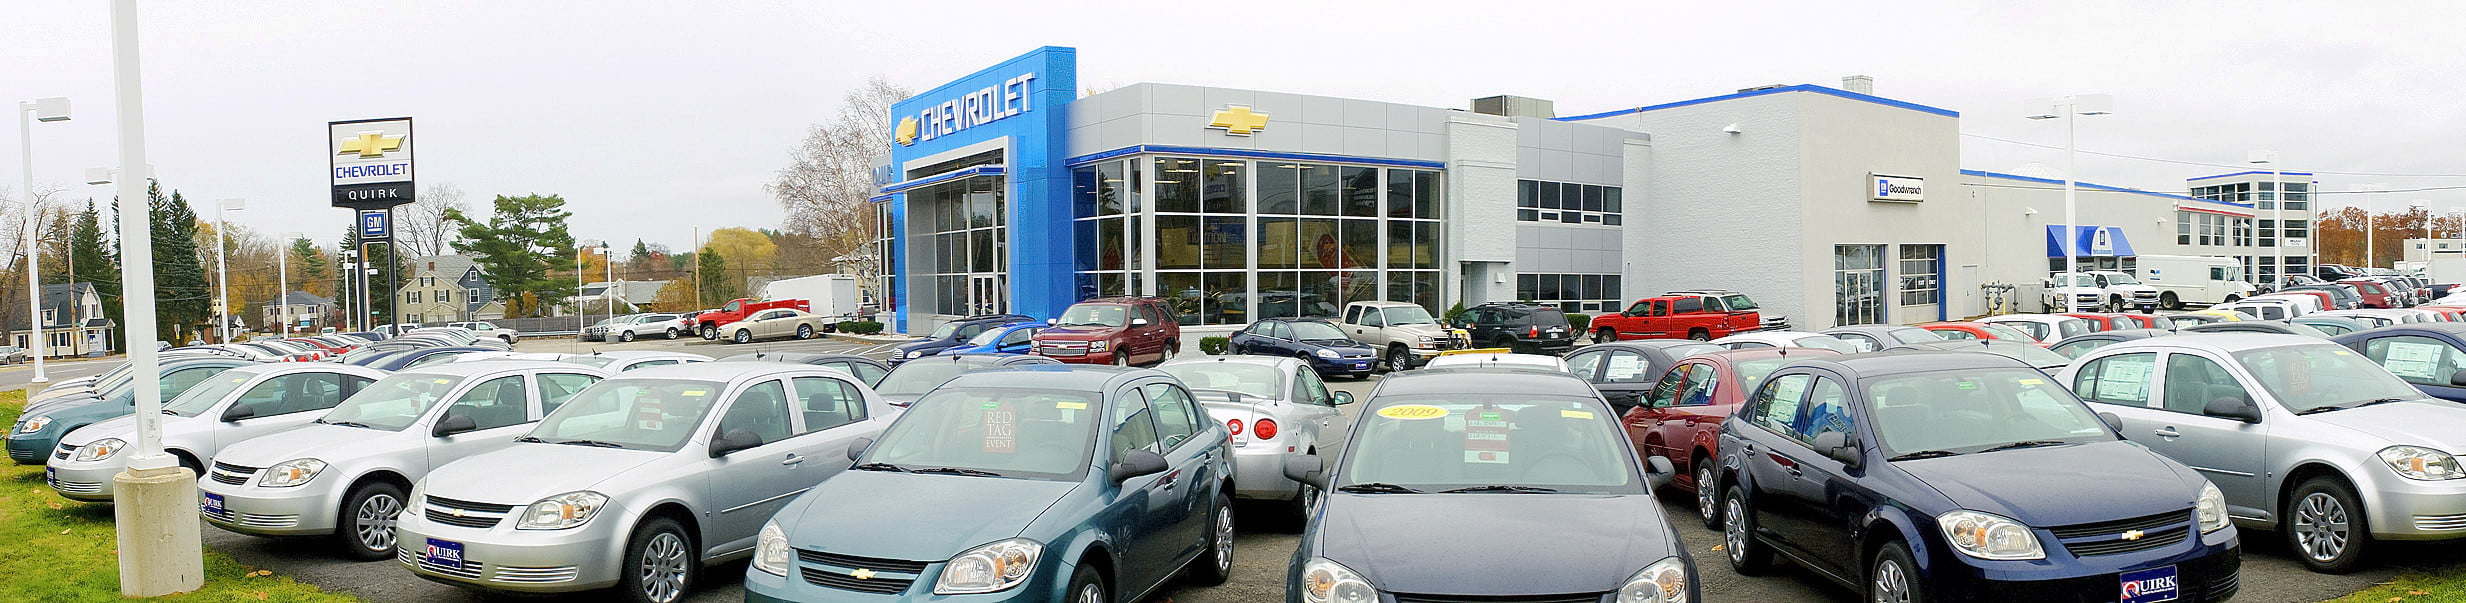 road rave subscription direct sales threaten traditional car dealers chevrolet dealership panorama 1